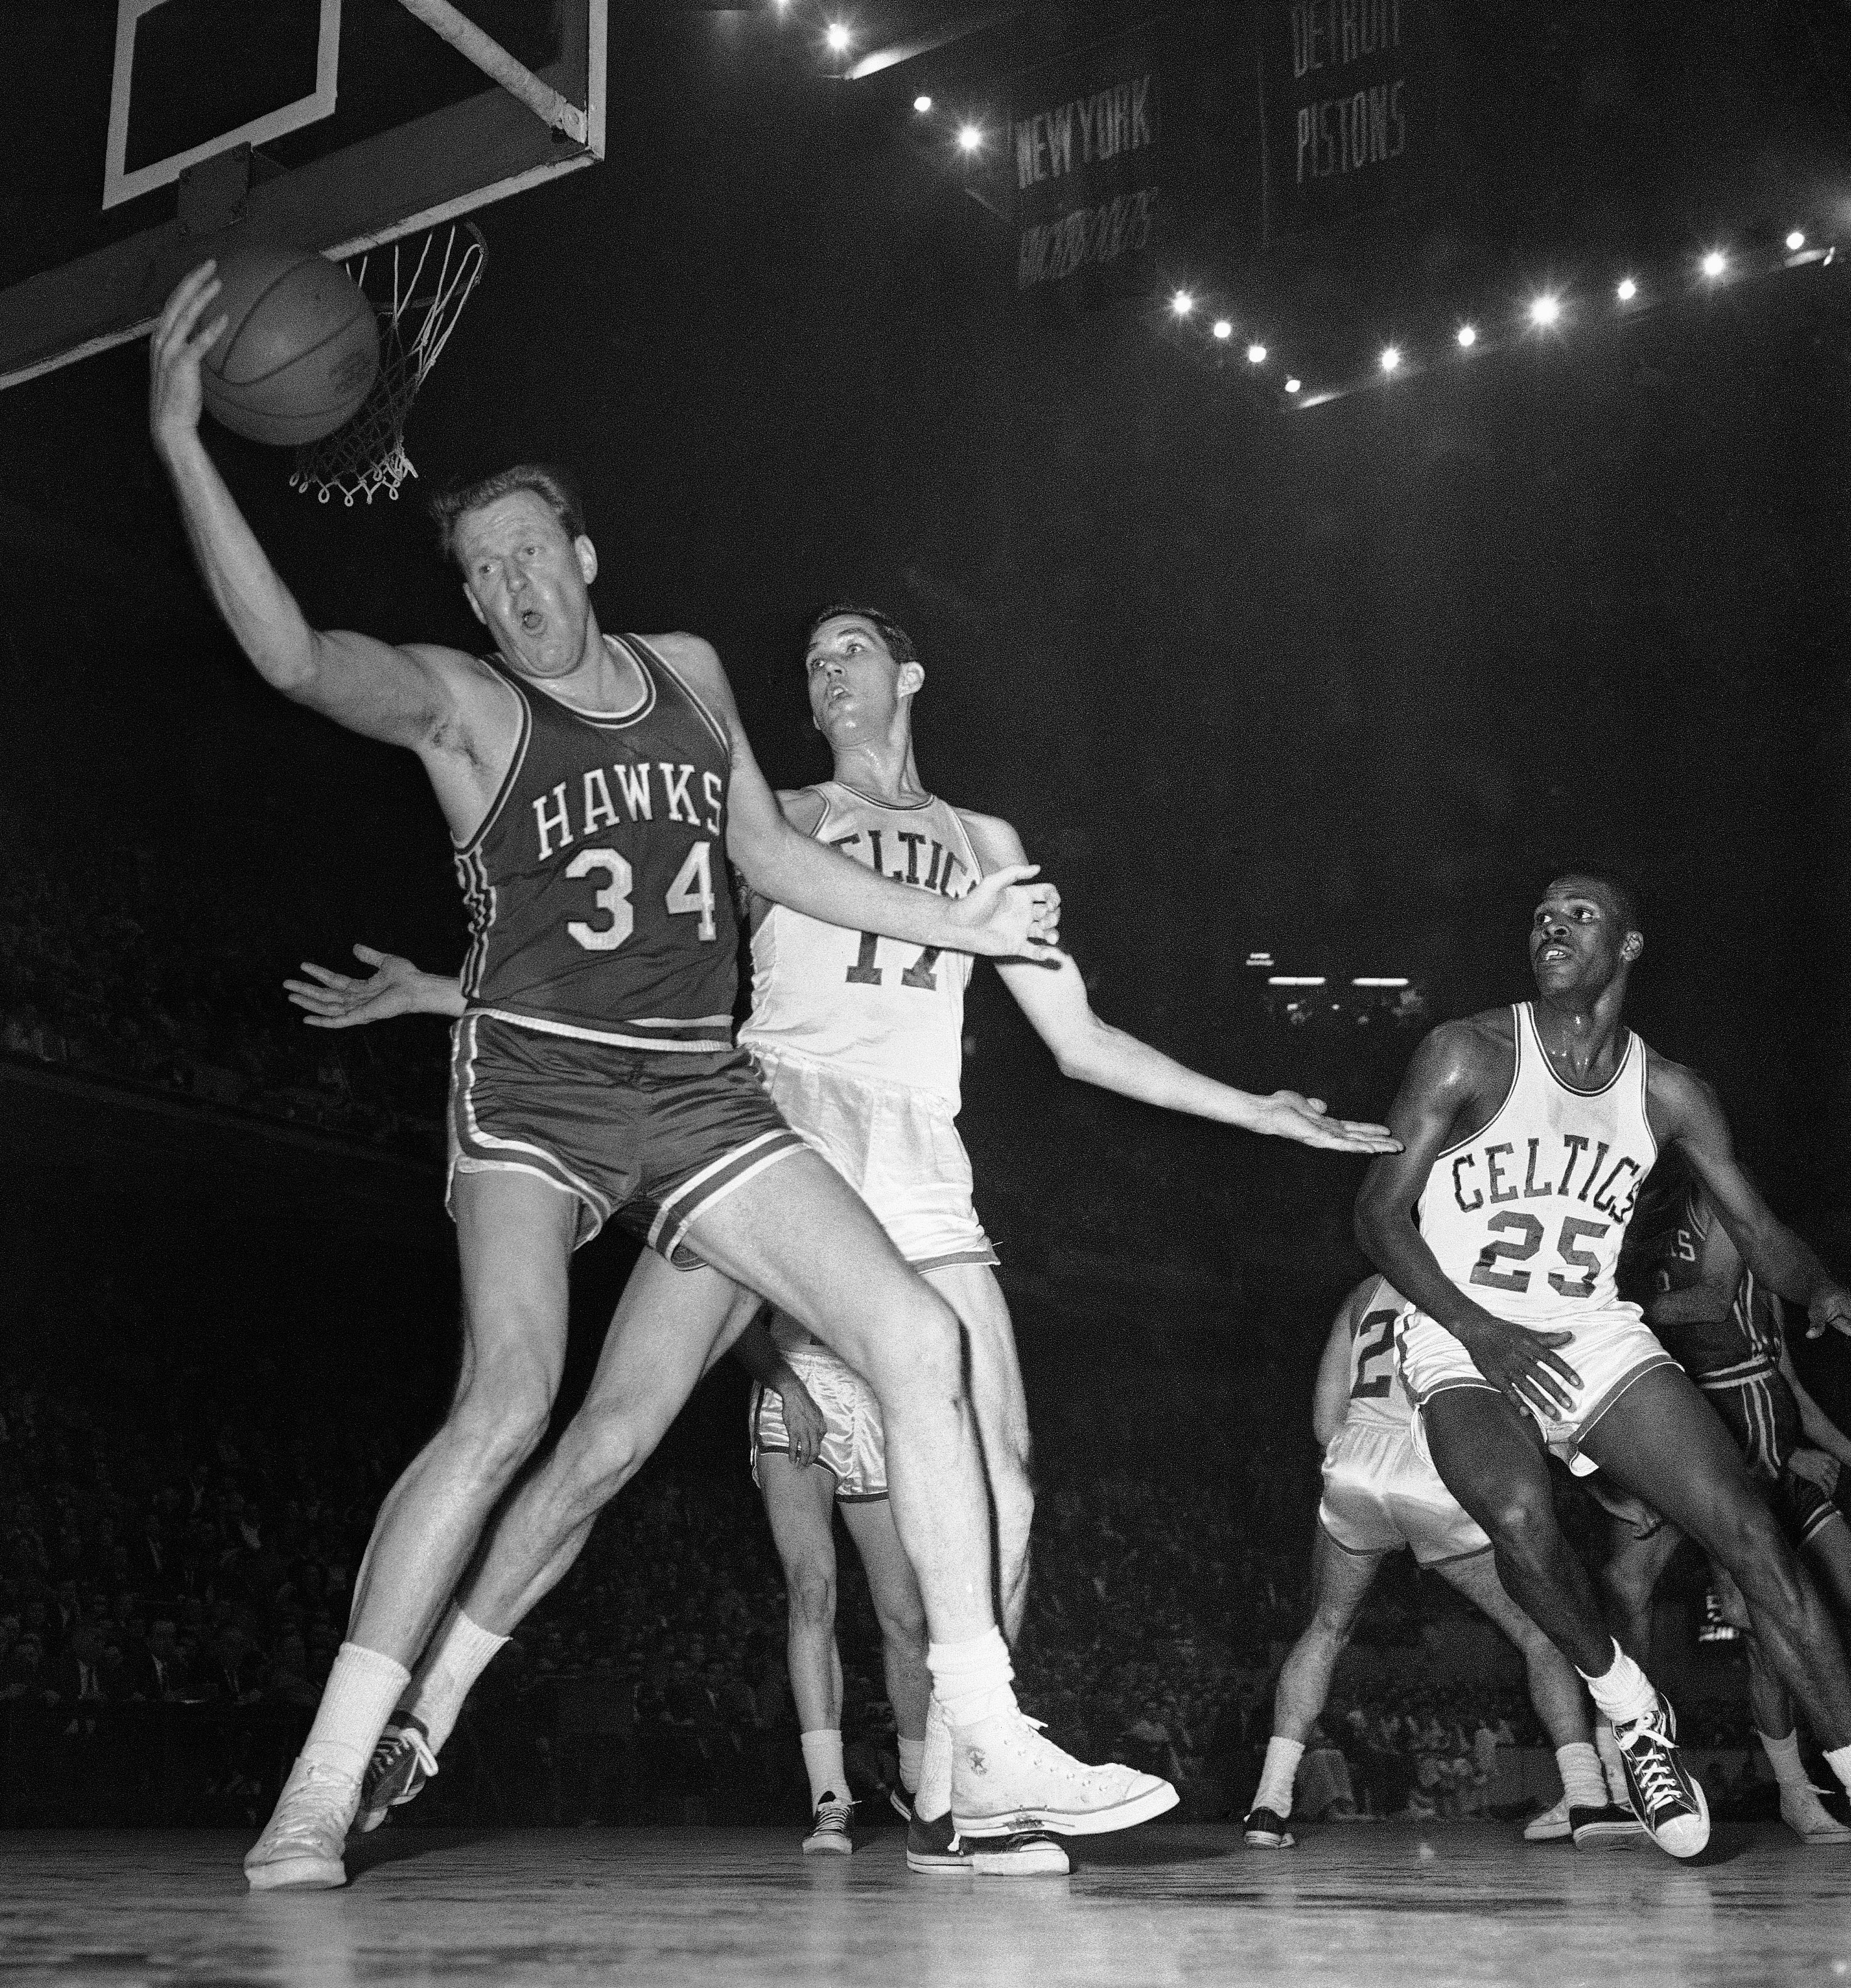 FILE - In this Jan. 13, 1960, file photo, St. Louis Hawks' Clyde Lovellette (34) snags ball from going out of bounds as Boston Celtics' Gene Conley defends during an NBA basketball game in Boston. Lovellette, the Hall of Fame forward who led Kansas to the